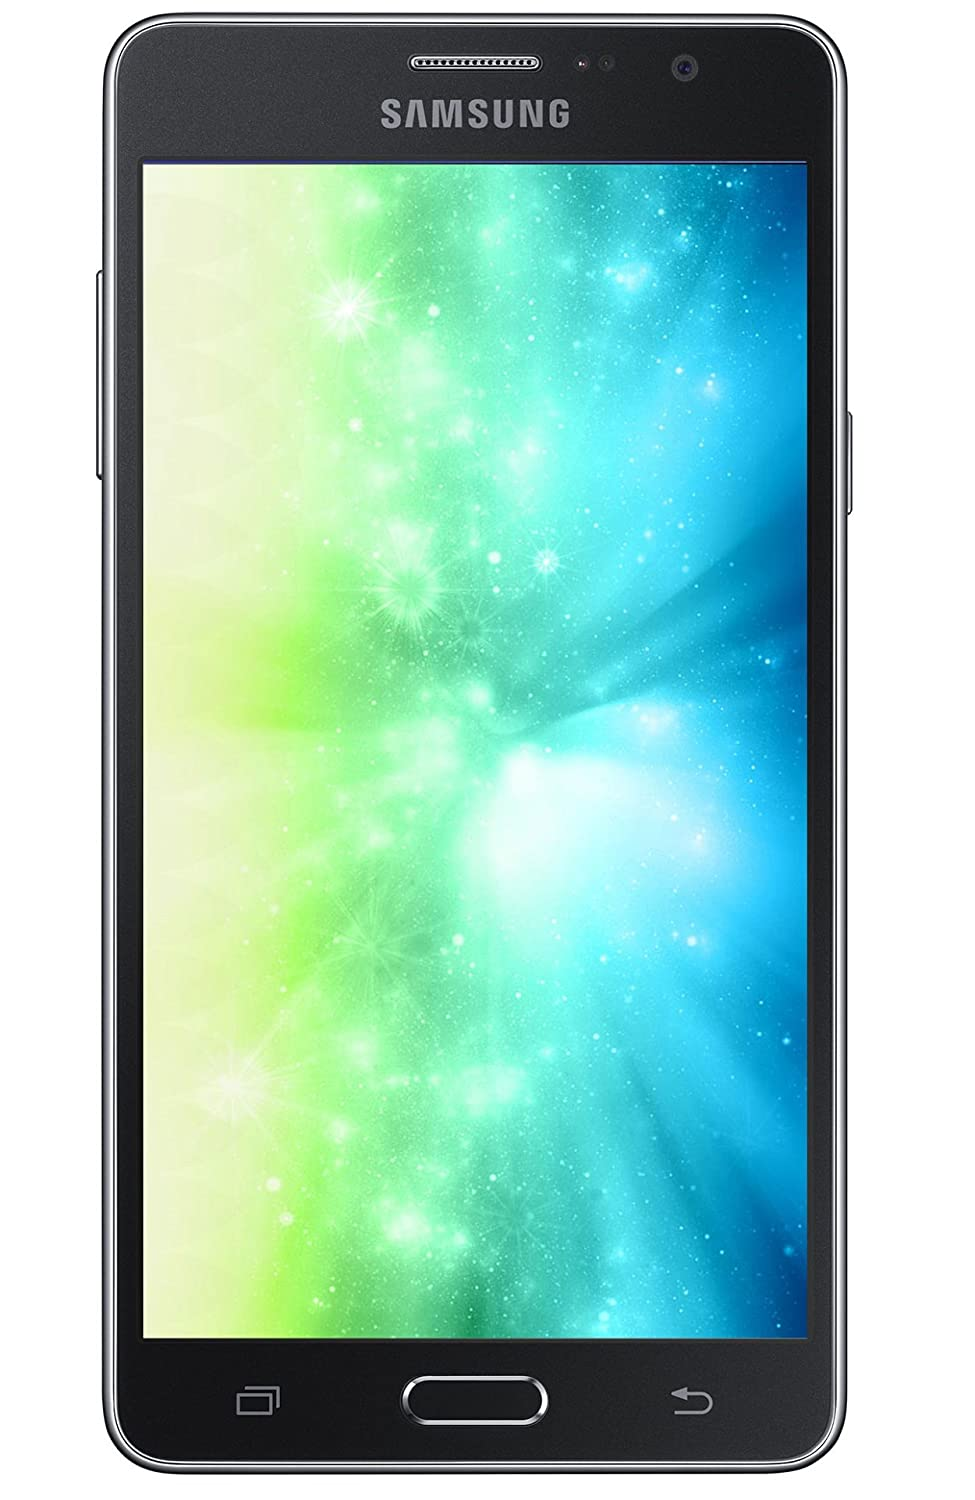 Samsung Galaxy On5 Pro (2 GB/16 GB)